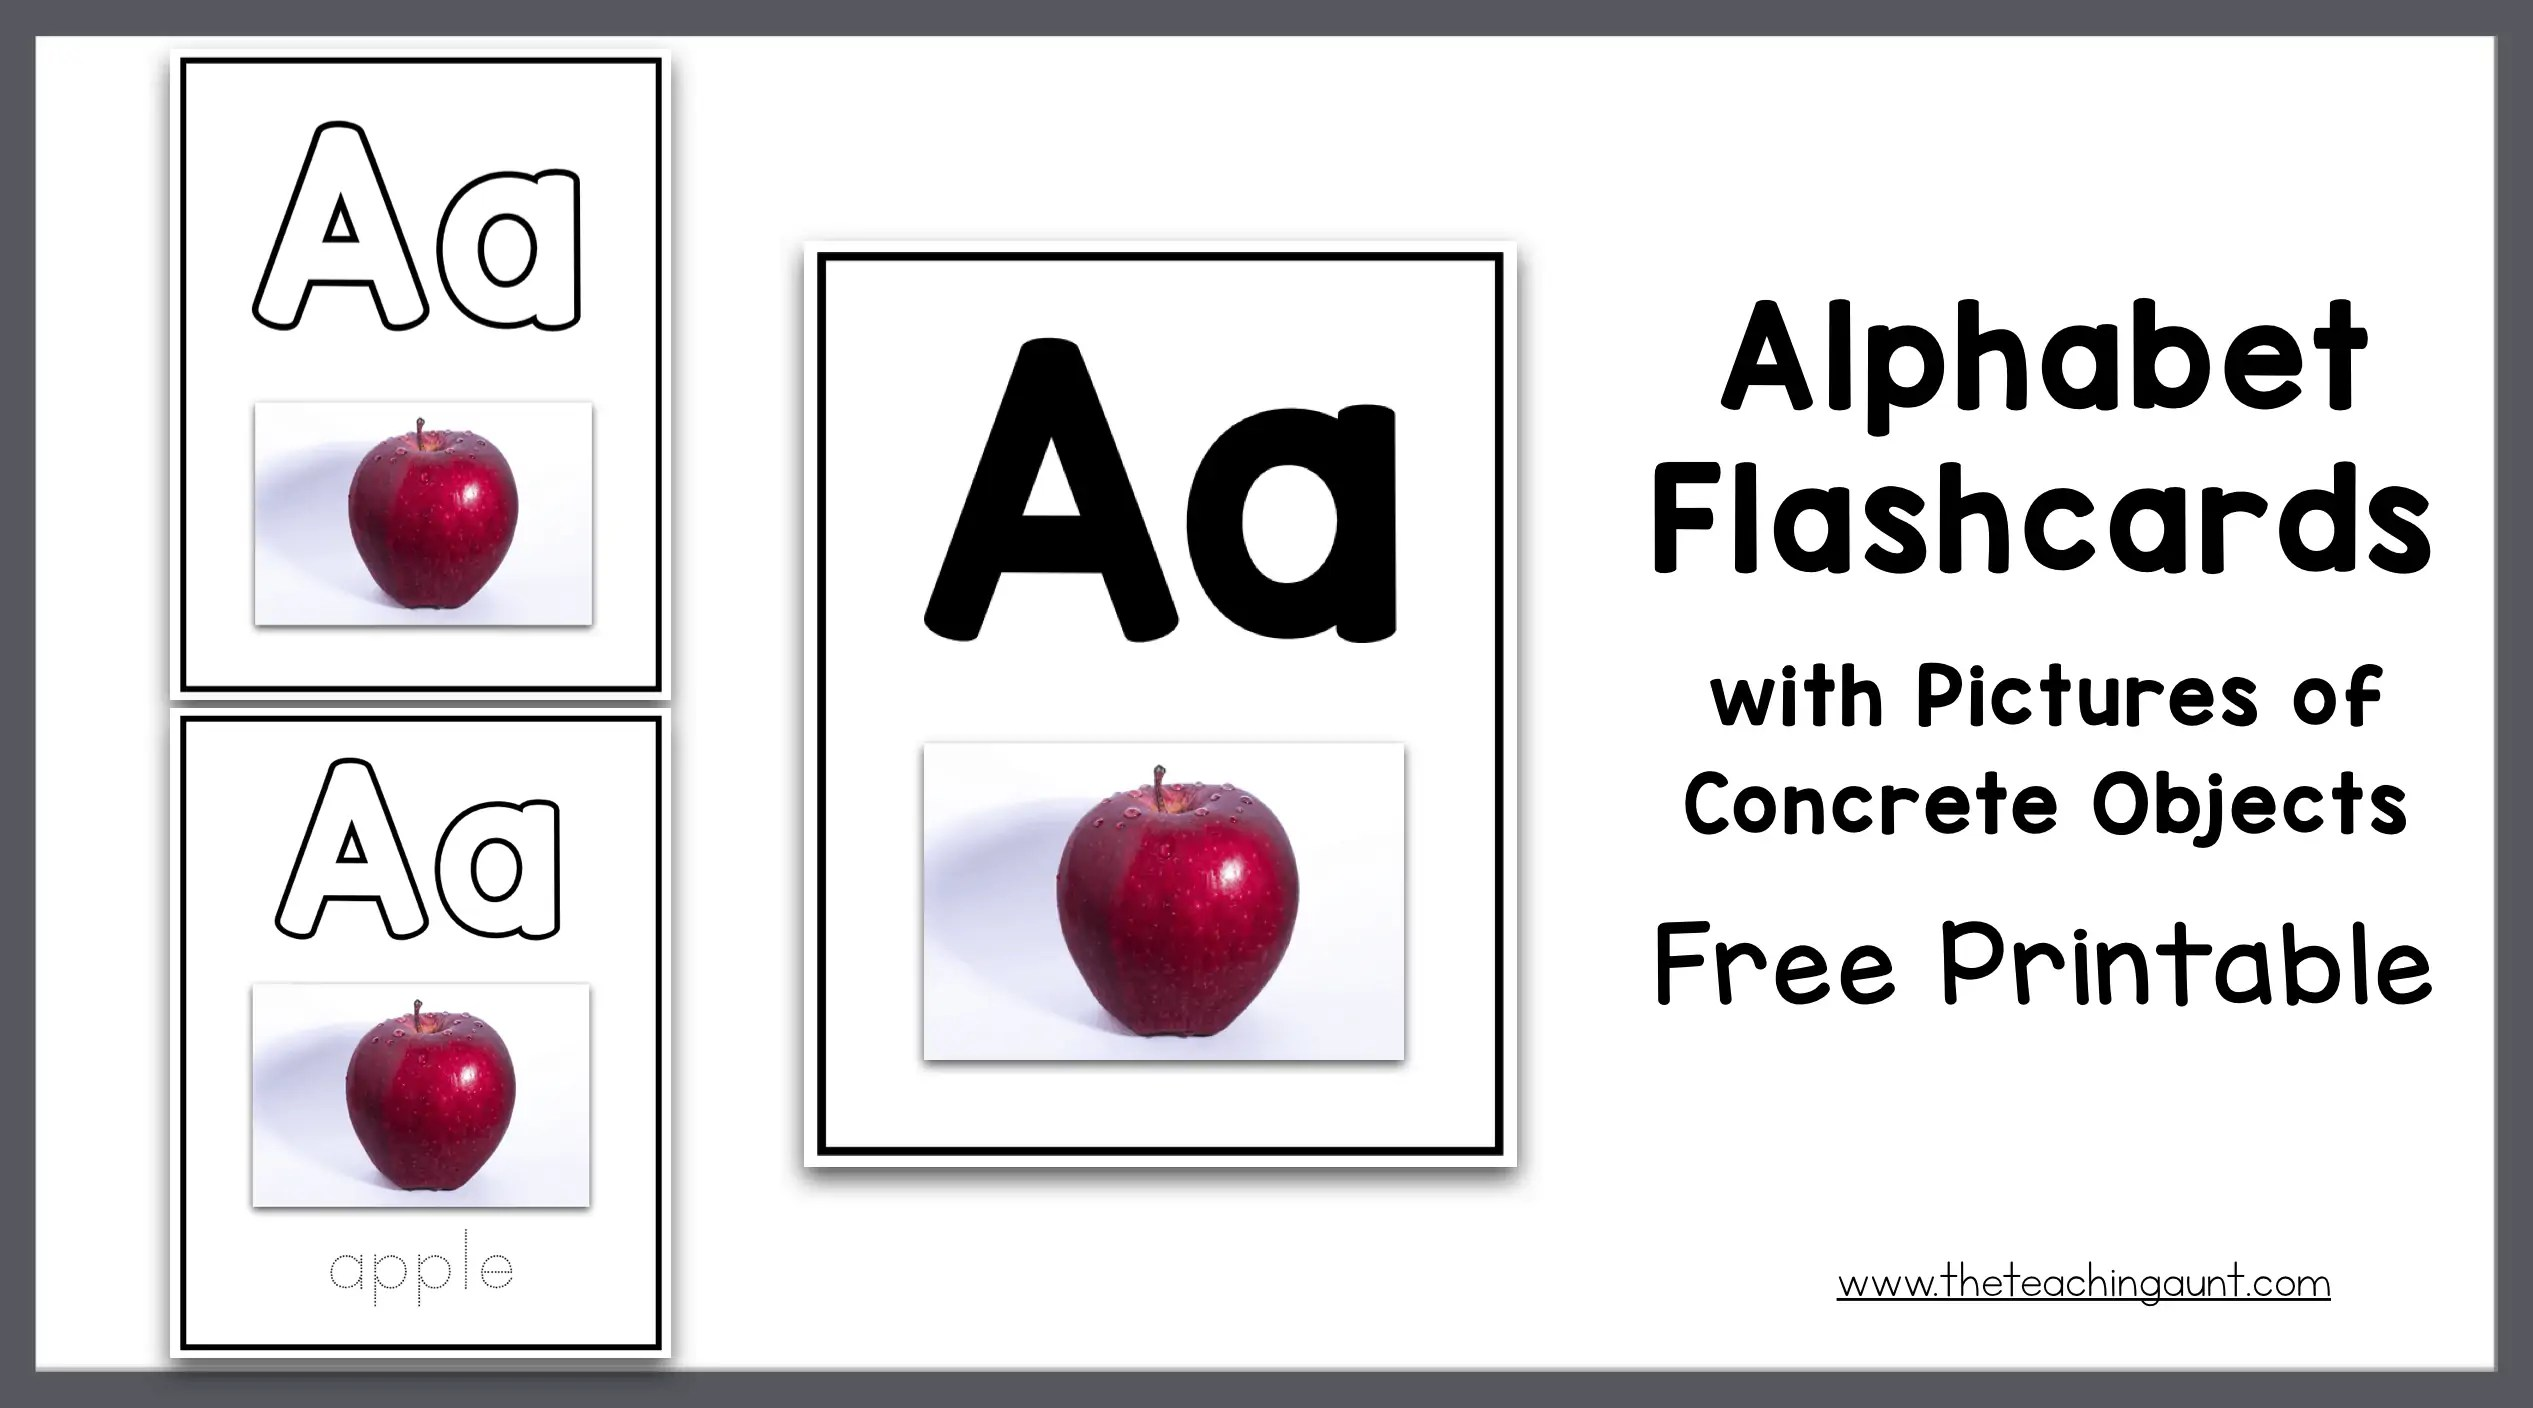 Alphabet Flashcards With Pictures Of Concrete Objects The Teaching Aunt